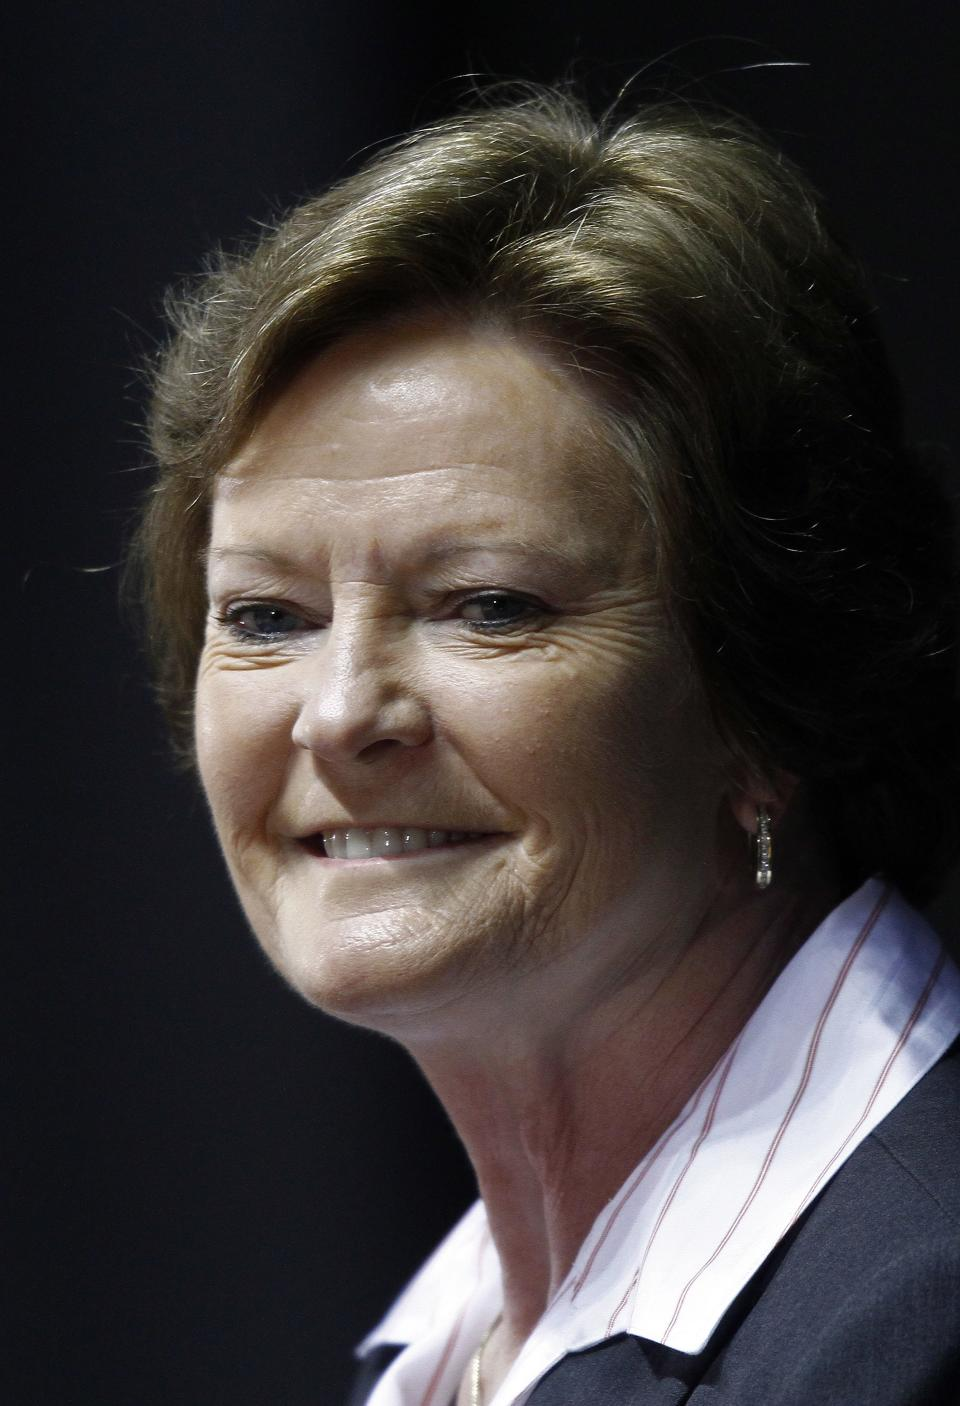 Former Tennessee women's college basketball coach Pat Summitt smiles as she appears at a news conference Thursday, April 19, 2012, in Knoxville, Tenn. Summitt stepped aside after 38 seasons, the last an emotionally draining farewell tour for the woman who won more games than anyone else in NCAA college basketball history. (AP Photo/Wade Payne)